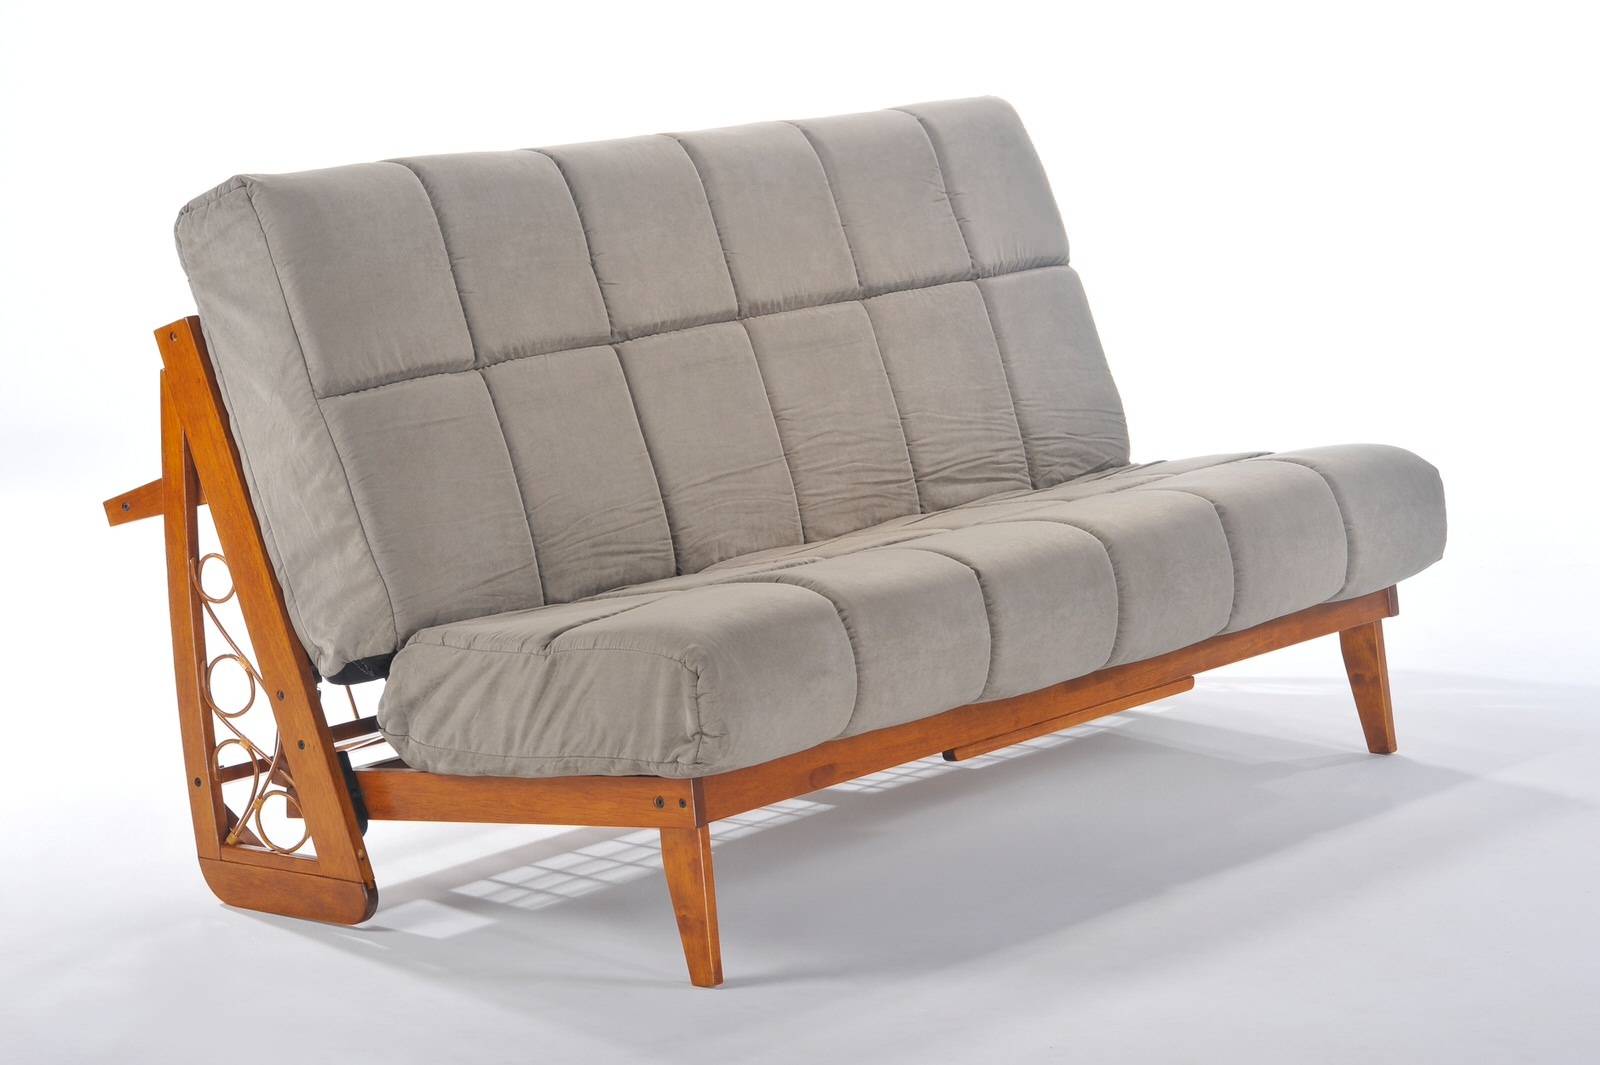 Tango Hickory Futon Frame By Night Day Furniture